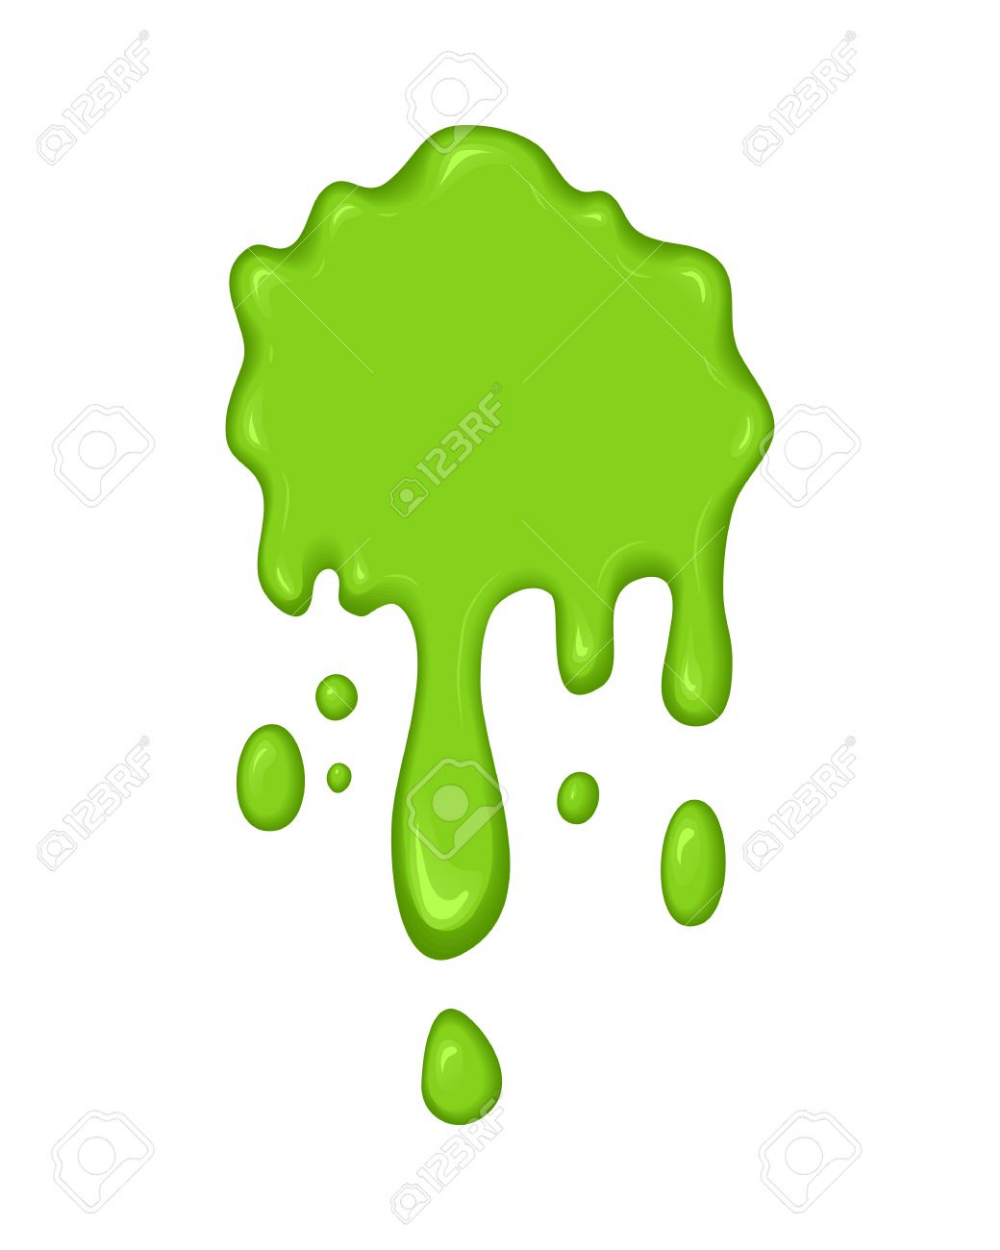 Vector Illustration Slime Drips And Flowing Abstract Green Vector Illustration Abstract Illustration